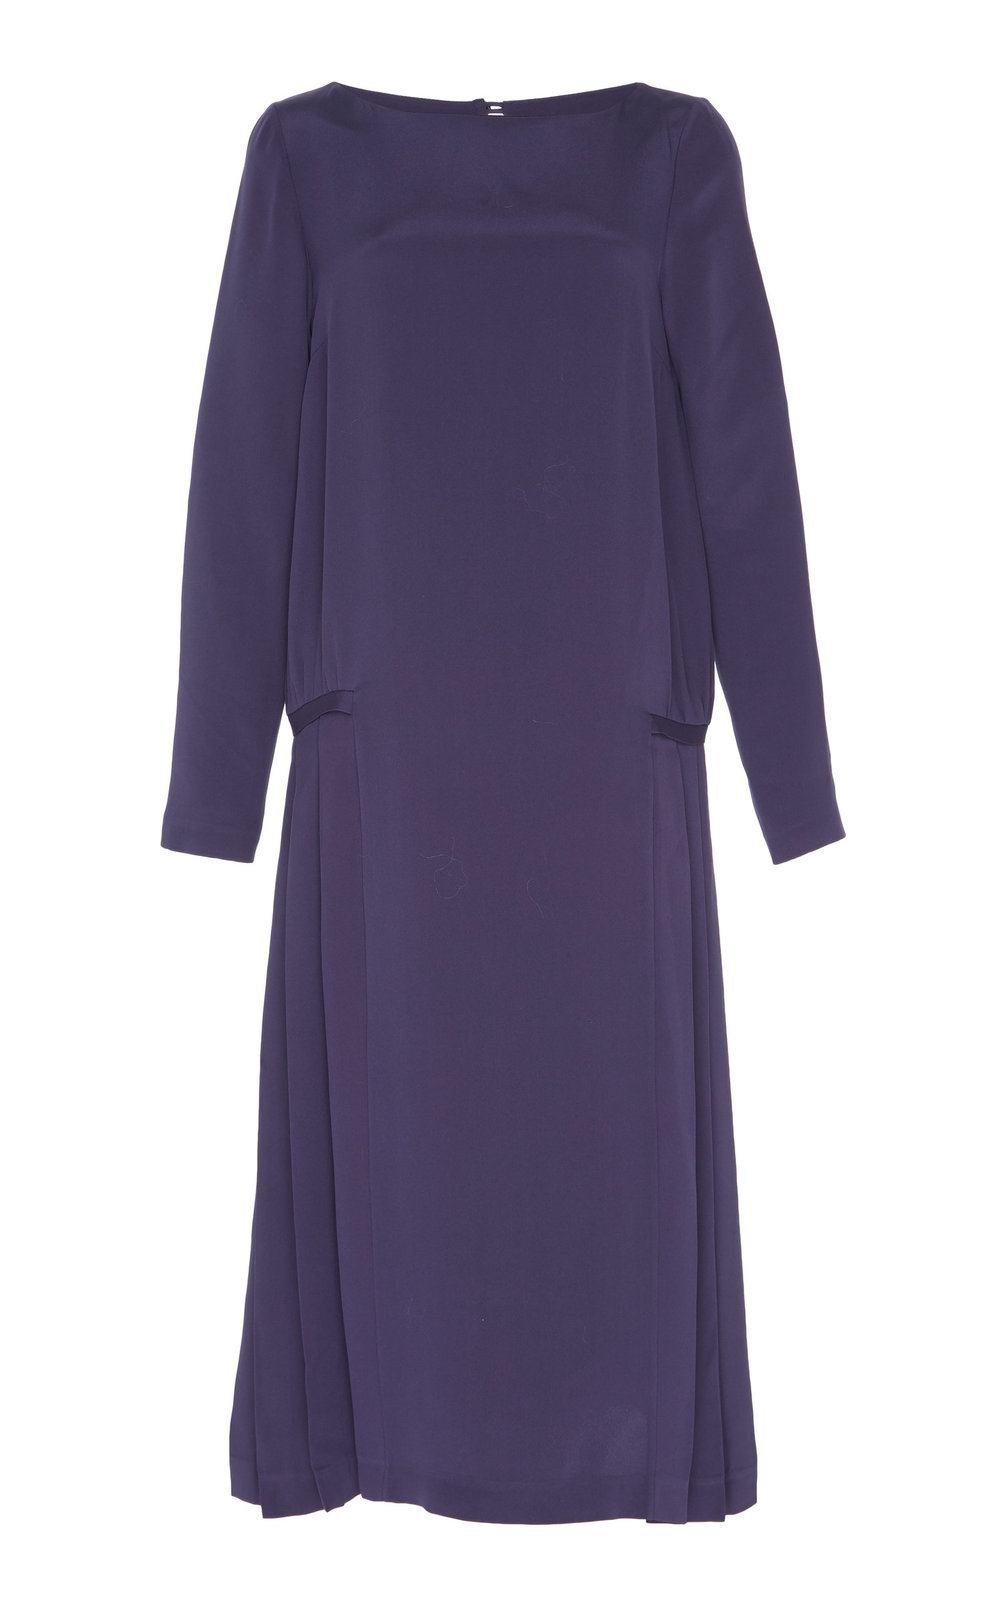 Saponaria Silk Dress - SMOKED PURPLE  Cut in a loose shape, this long sleeves Silk dress features a boat neckline and dropped waist. The fabric is delicately pressed into tiny pleats on the sides to enhance proportions and balance the flare. Pair yours with either flats or heels for equally stylish look.